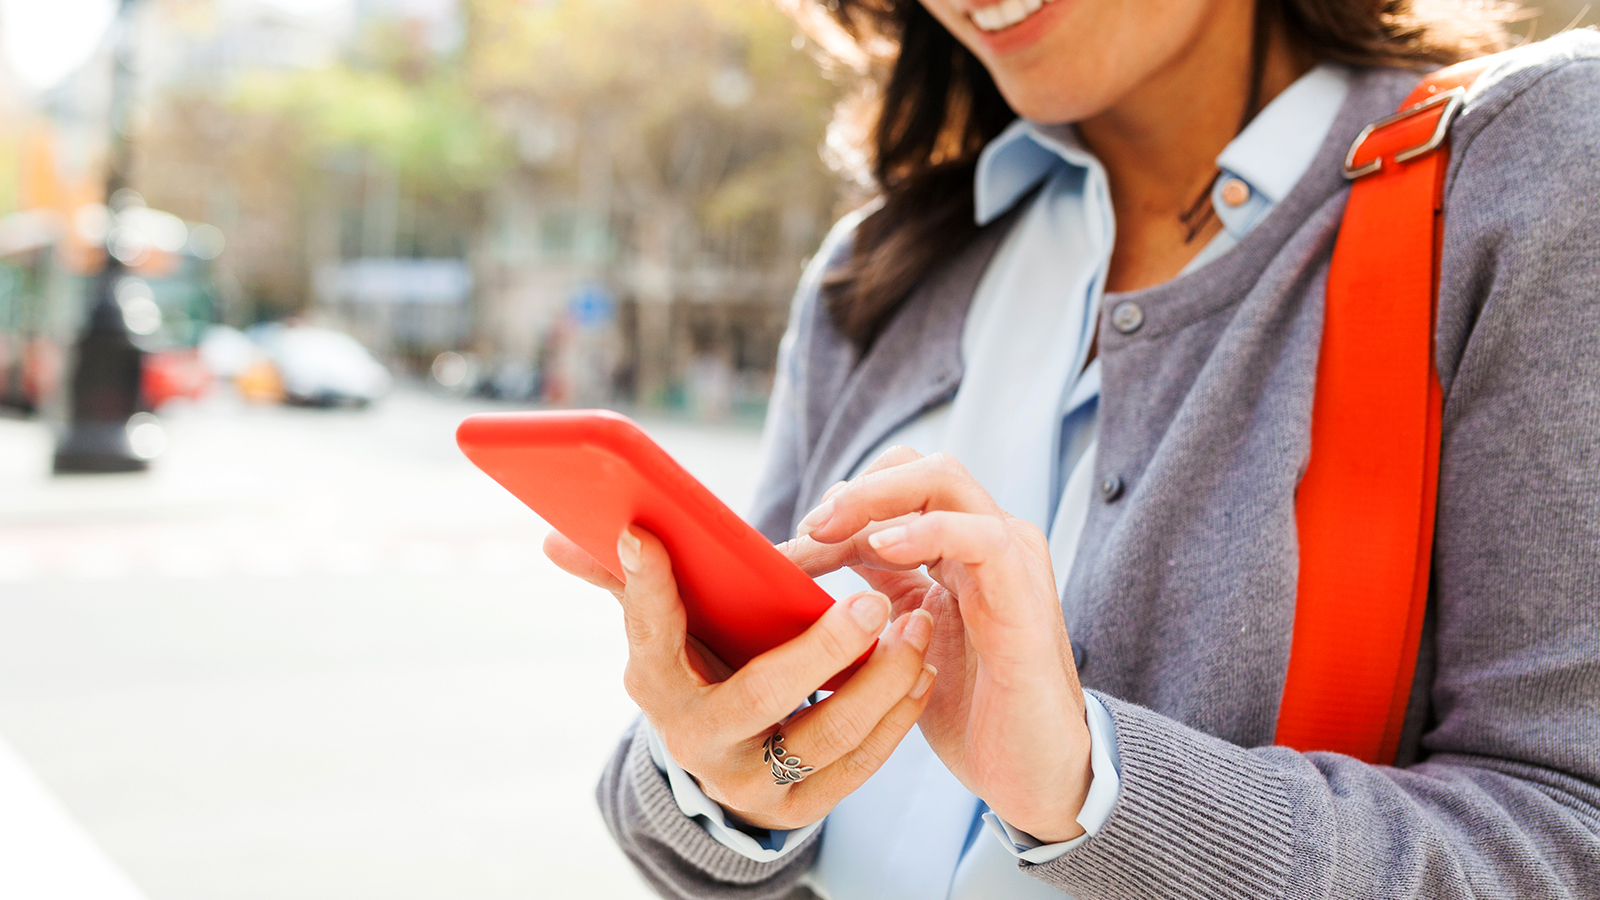 Study: We can text almost as fast as we type now